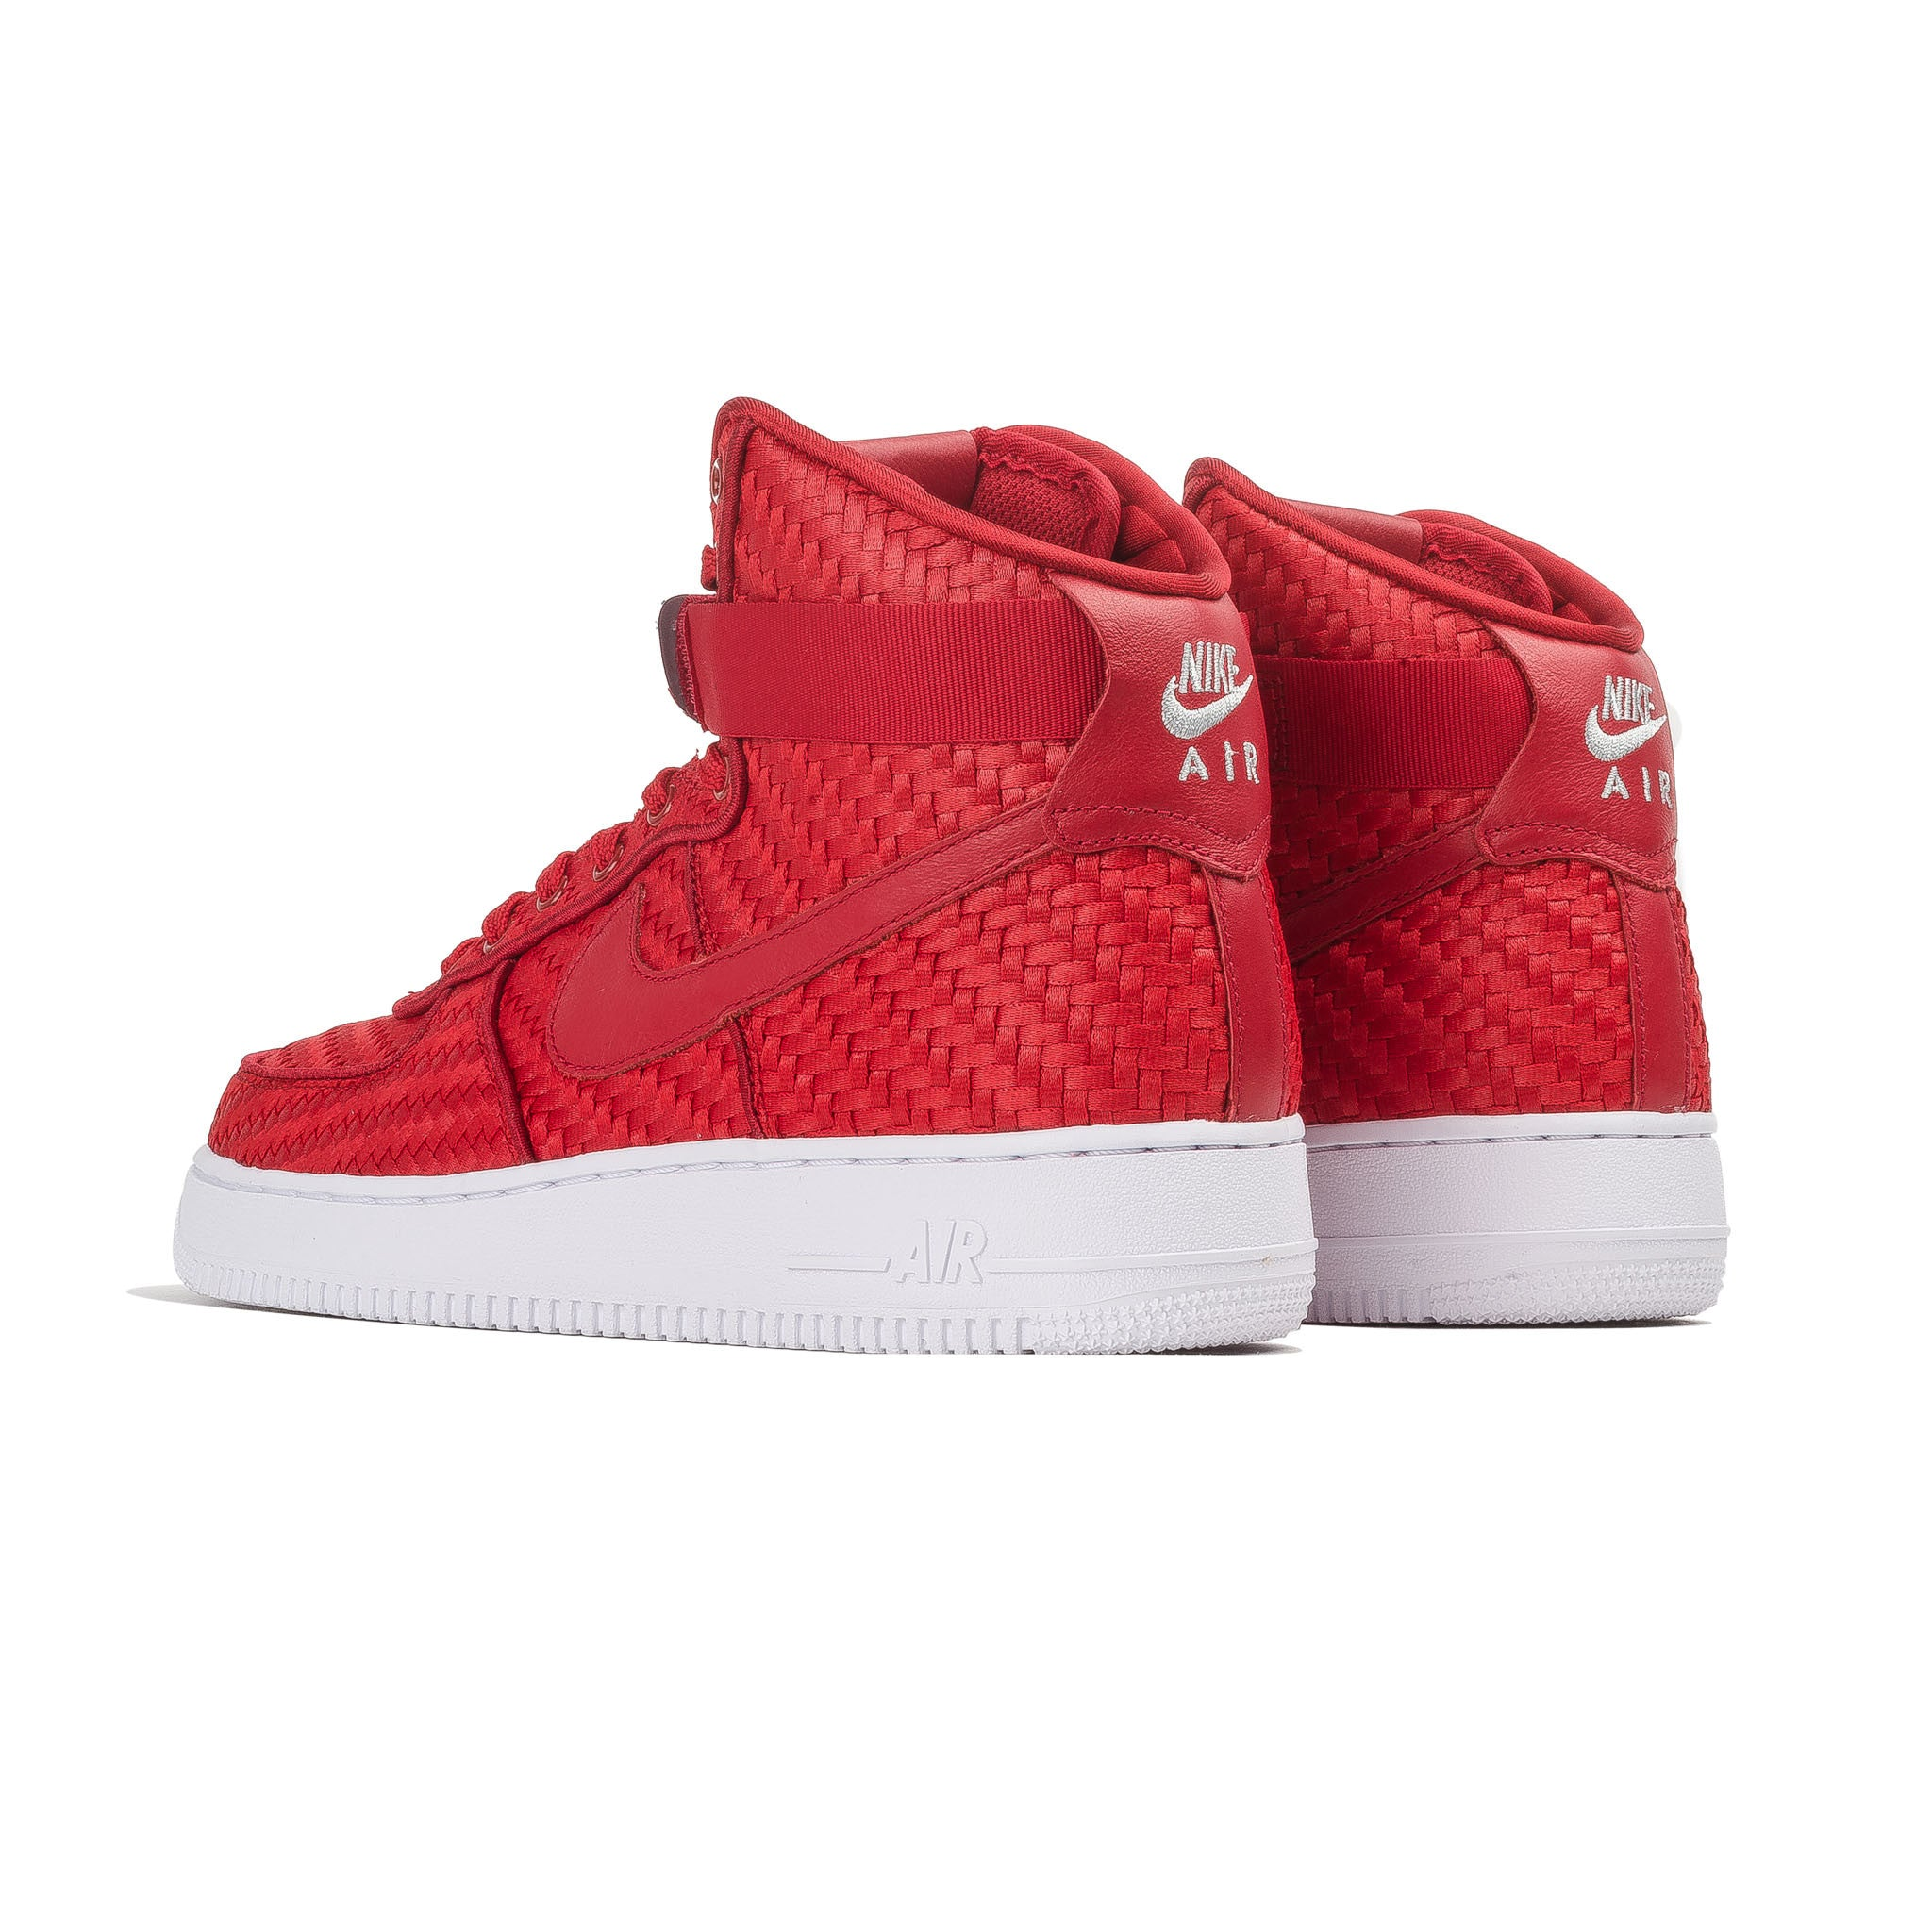 Air Force 1 High 07 LV8 Woven 843870-600